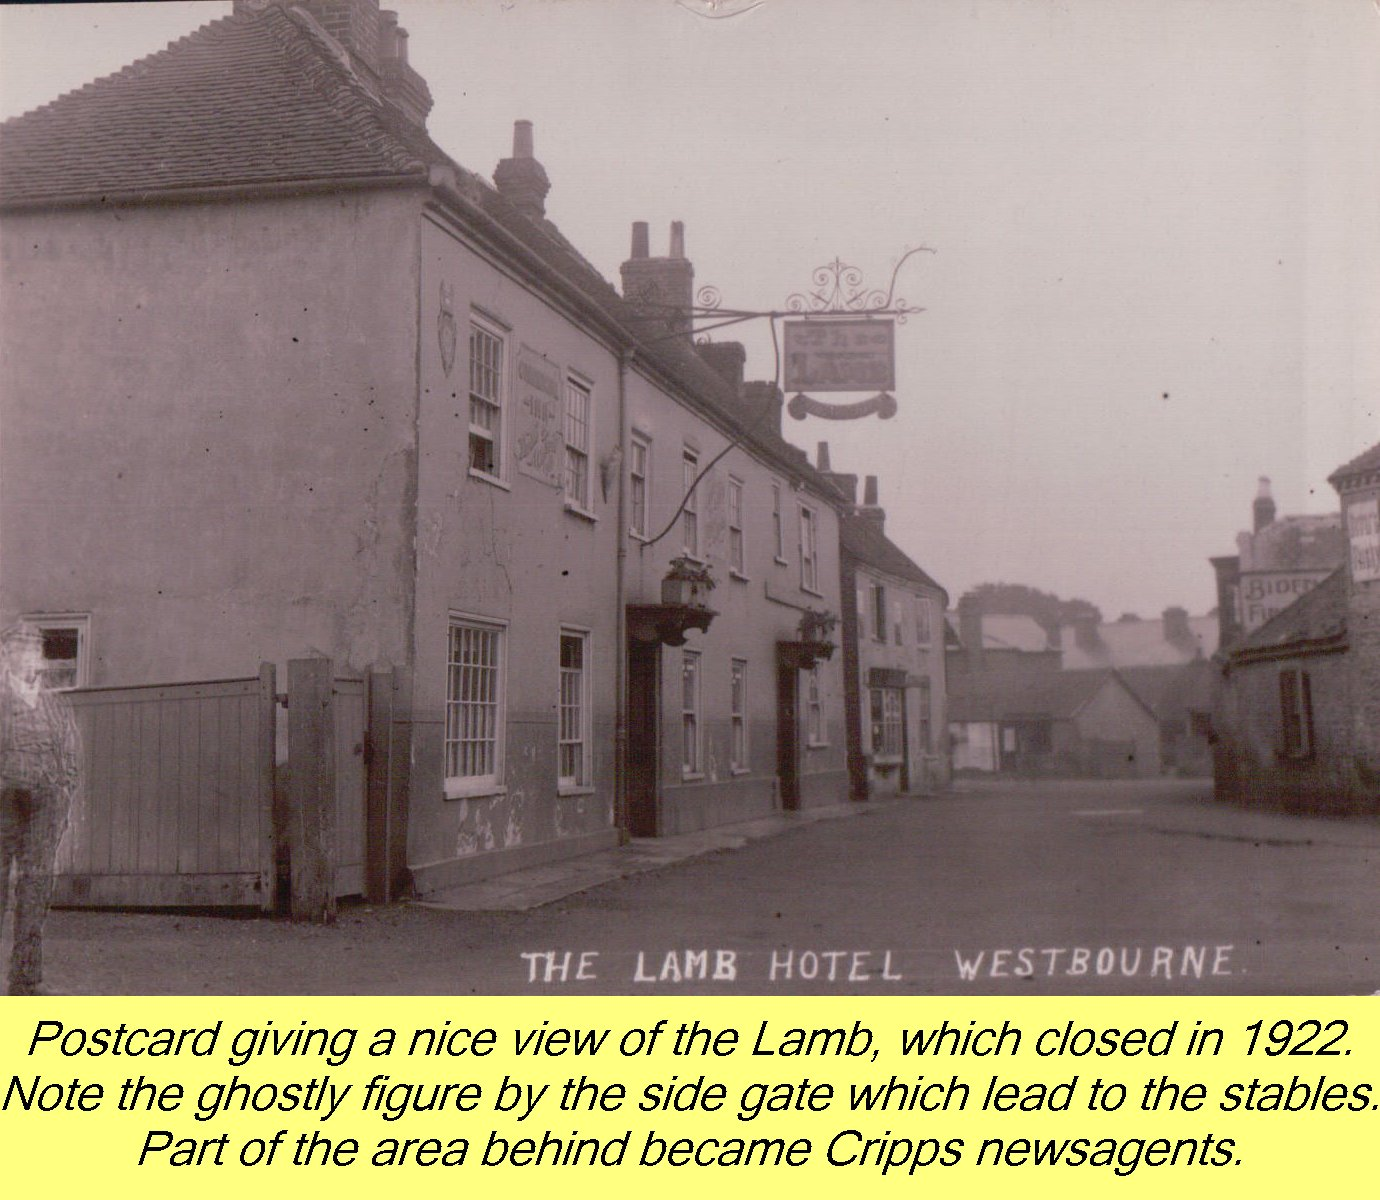 Postcard of Lamb Inn Westbourne by J Welch